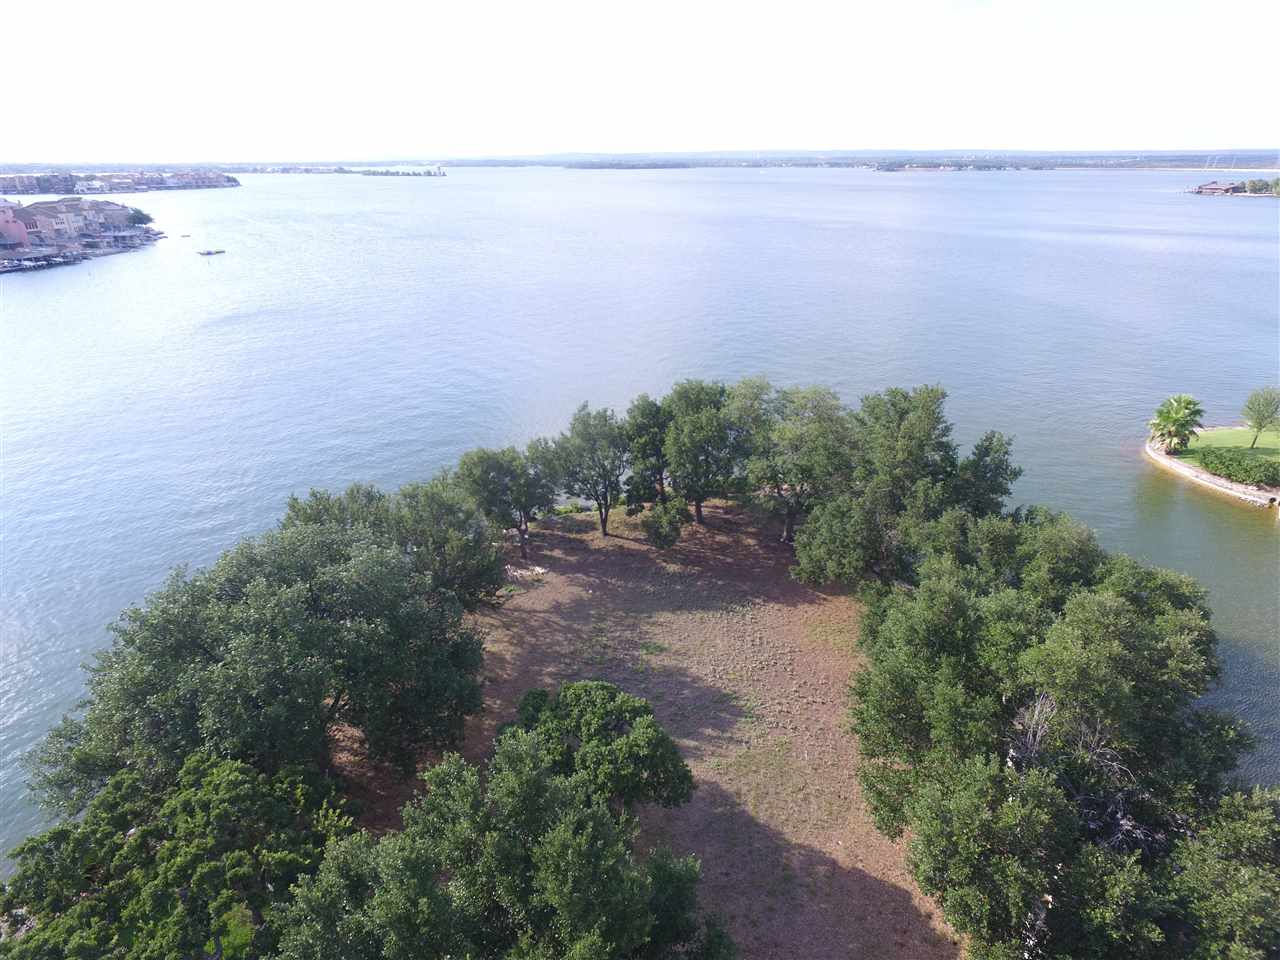 Land for Sale at Lot 37068 Bunny Run Horseshoe Bay, Texas 78657 United States